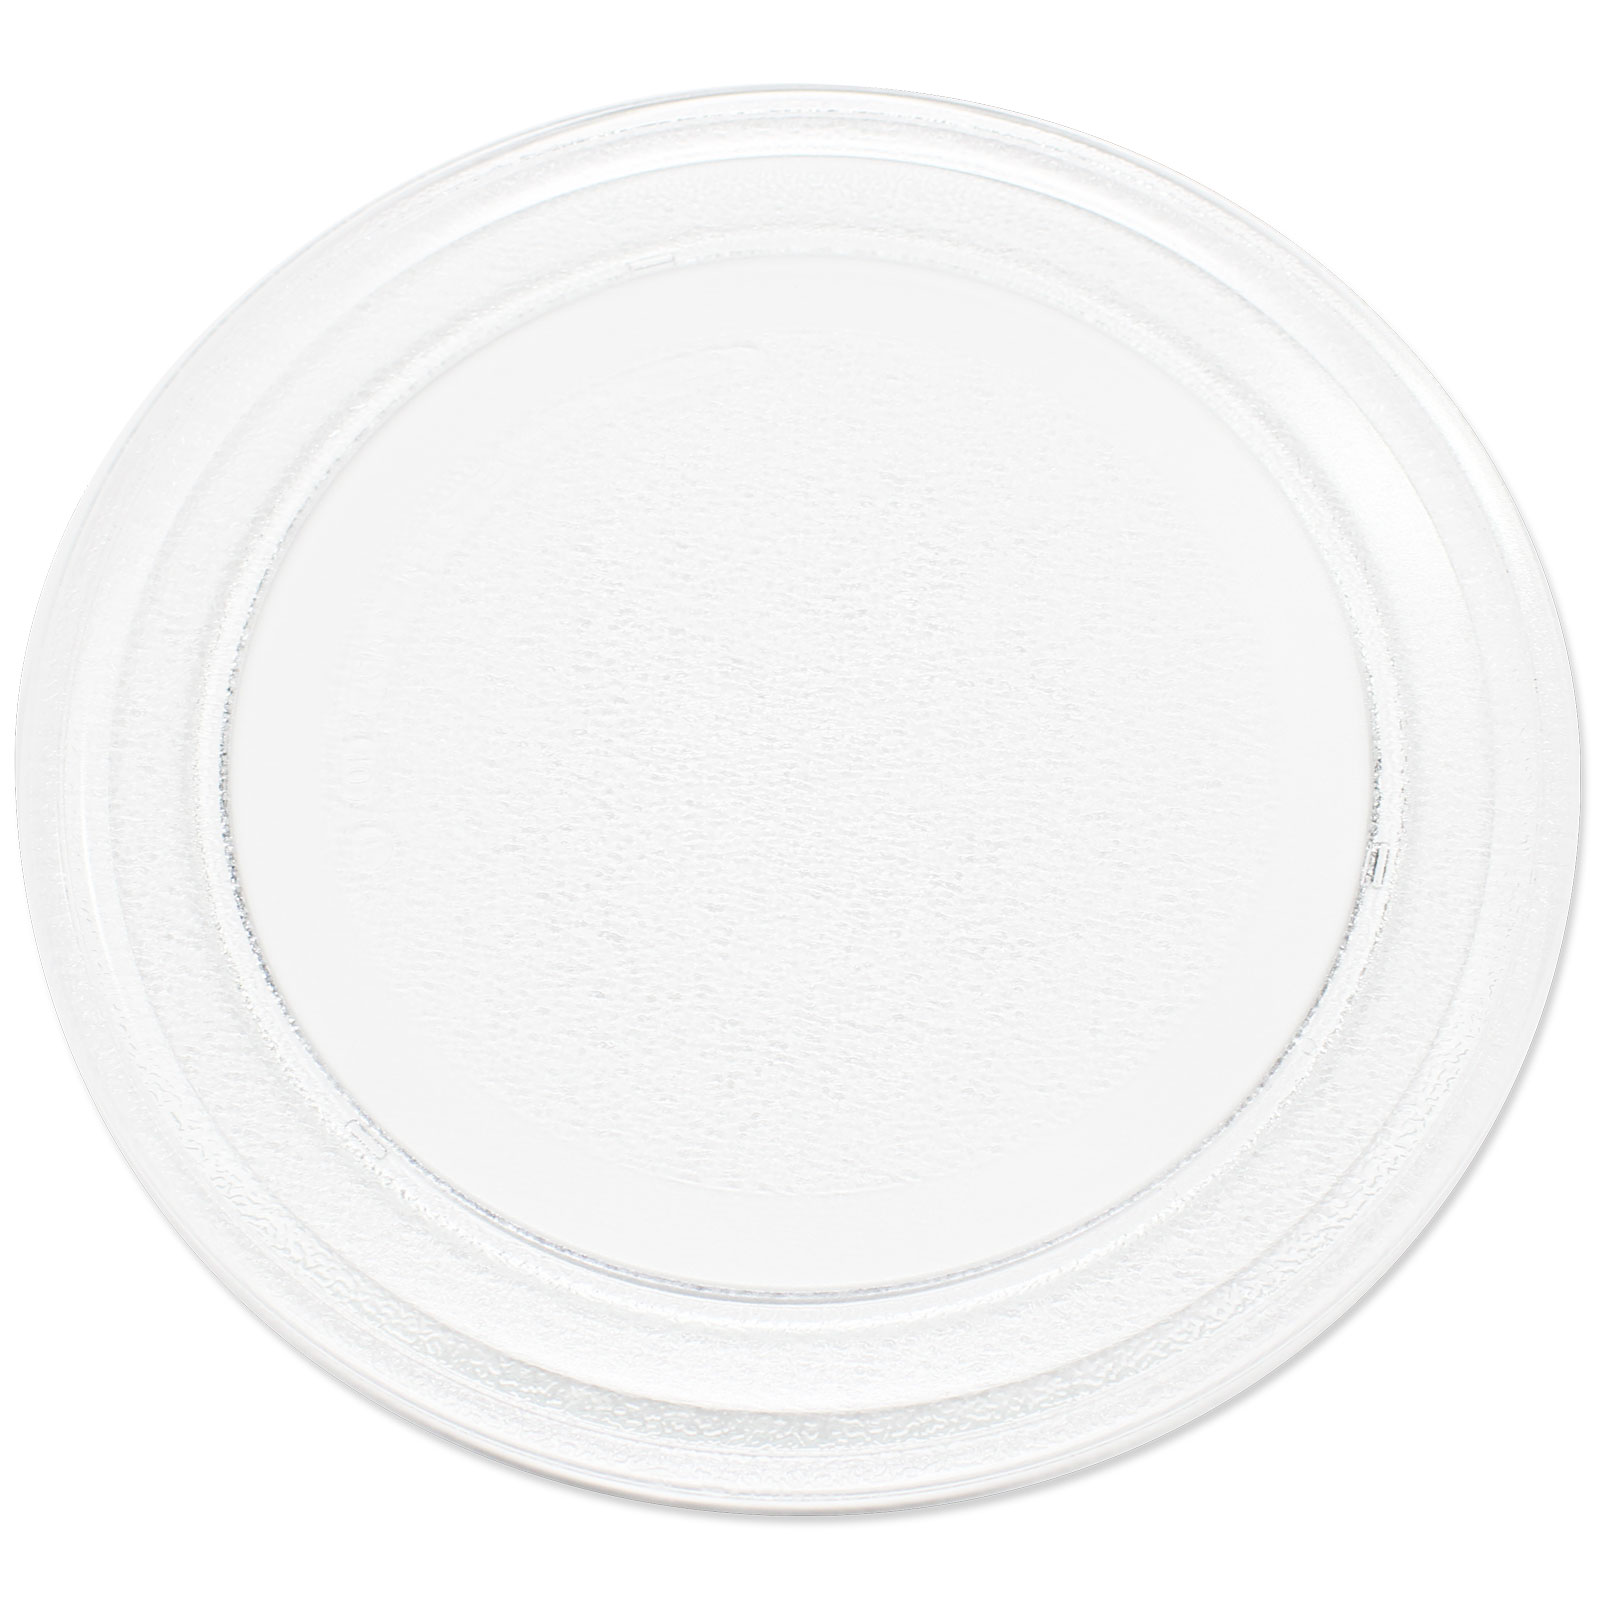 """Replacement Kenmore 72169072900 Microwave Glass Plate - Compatible Kenmore 3390W1A035D Microwave Glass Turntable Tray - 9 5/8"""" (245 mm) - image 4 de 4"""